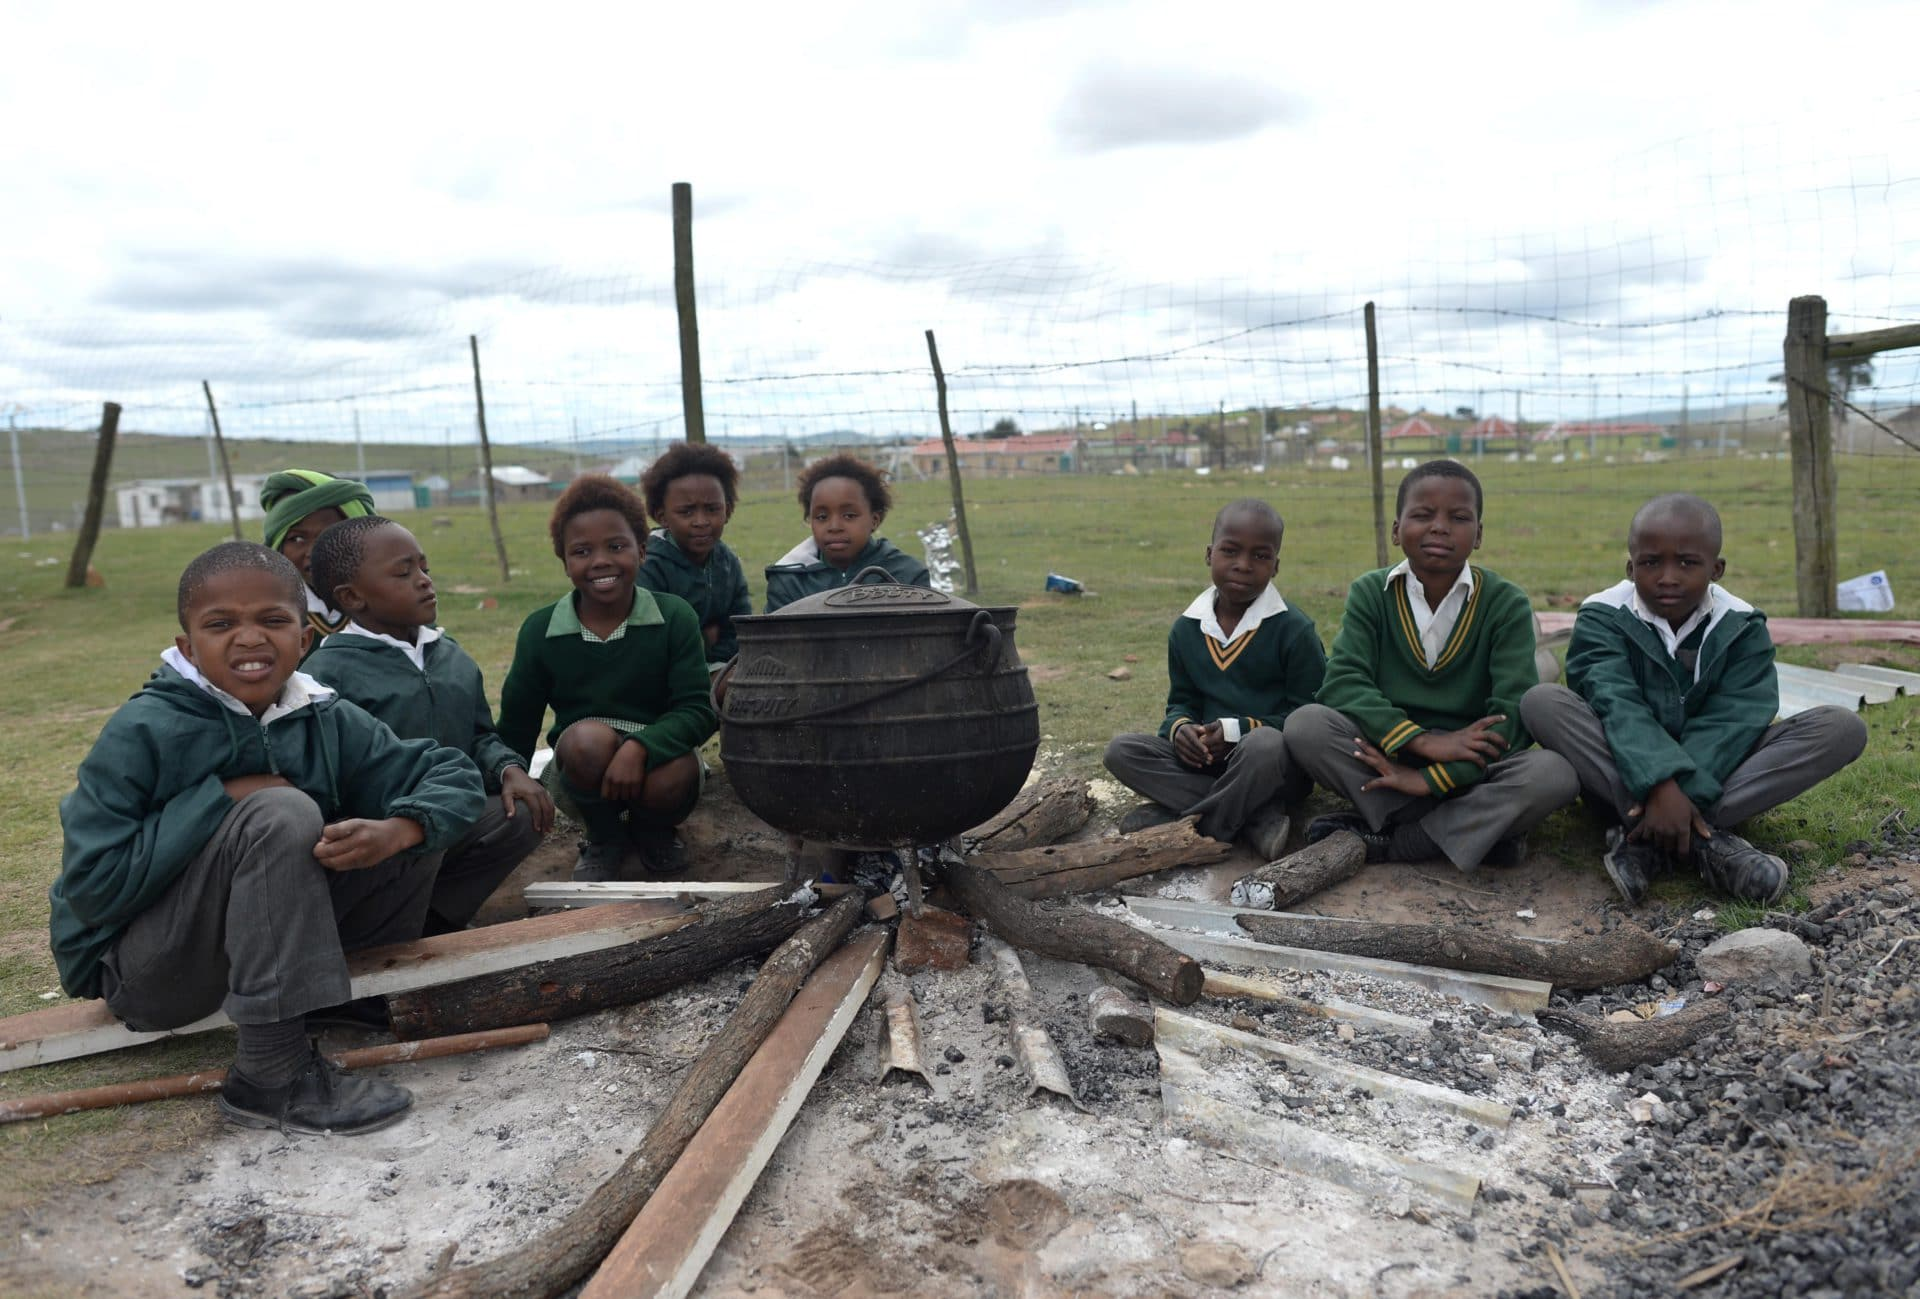 School children cooking pot